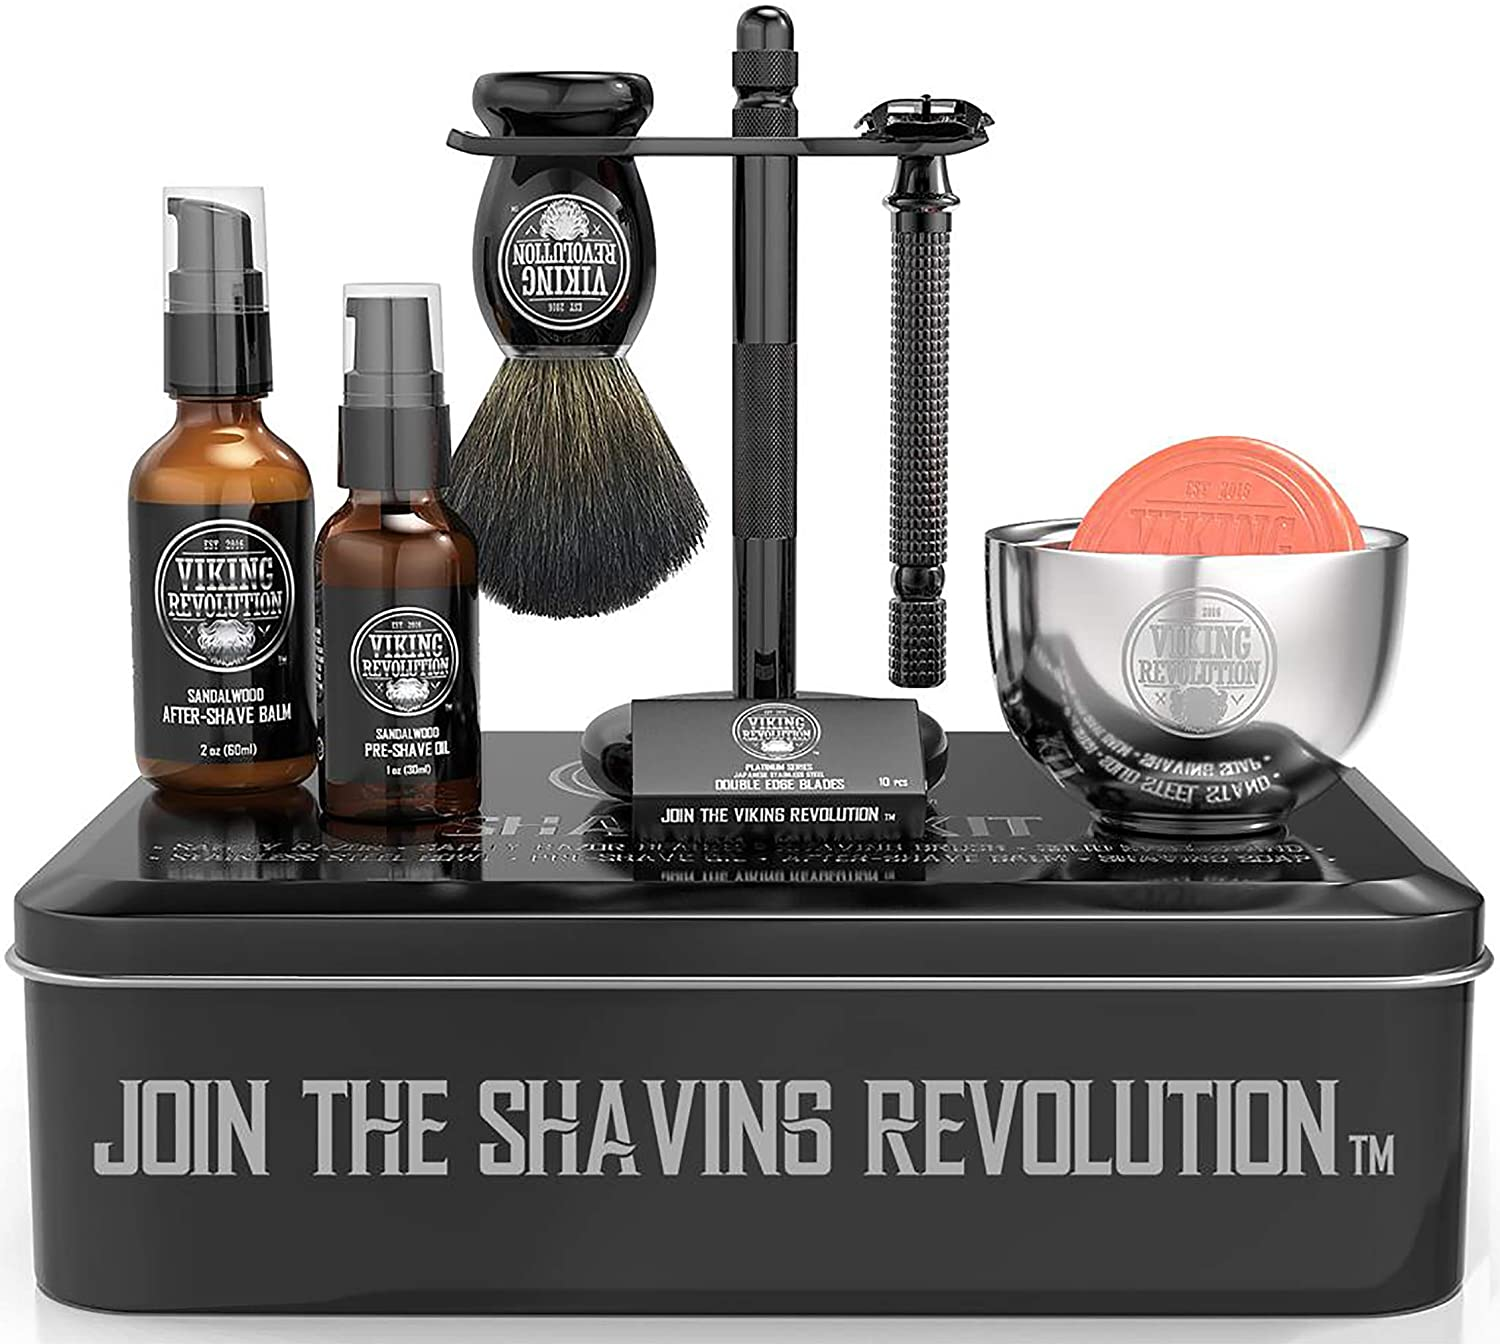 Viking Revolution shaving kit for men